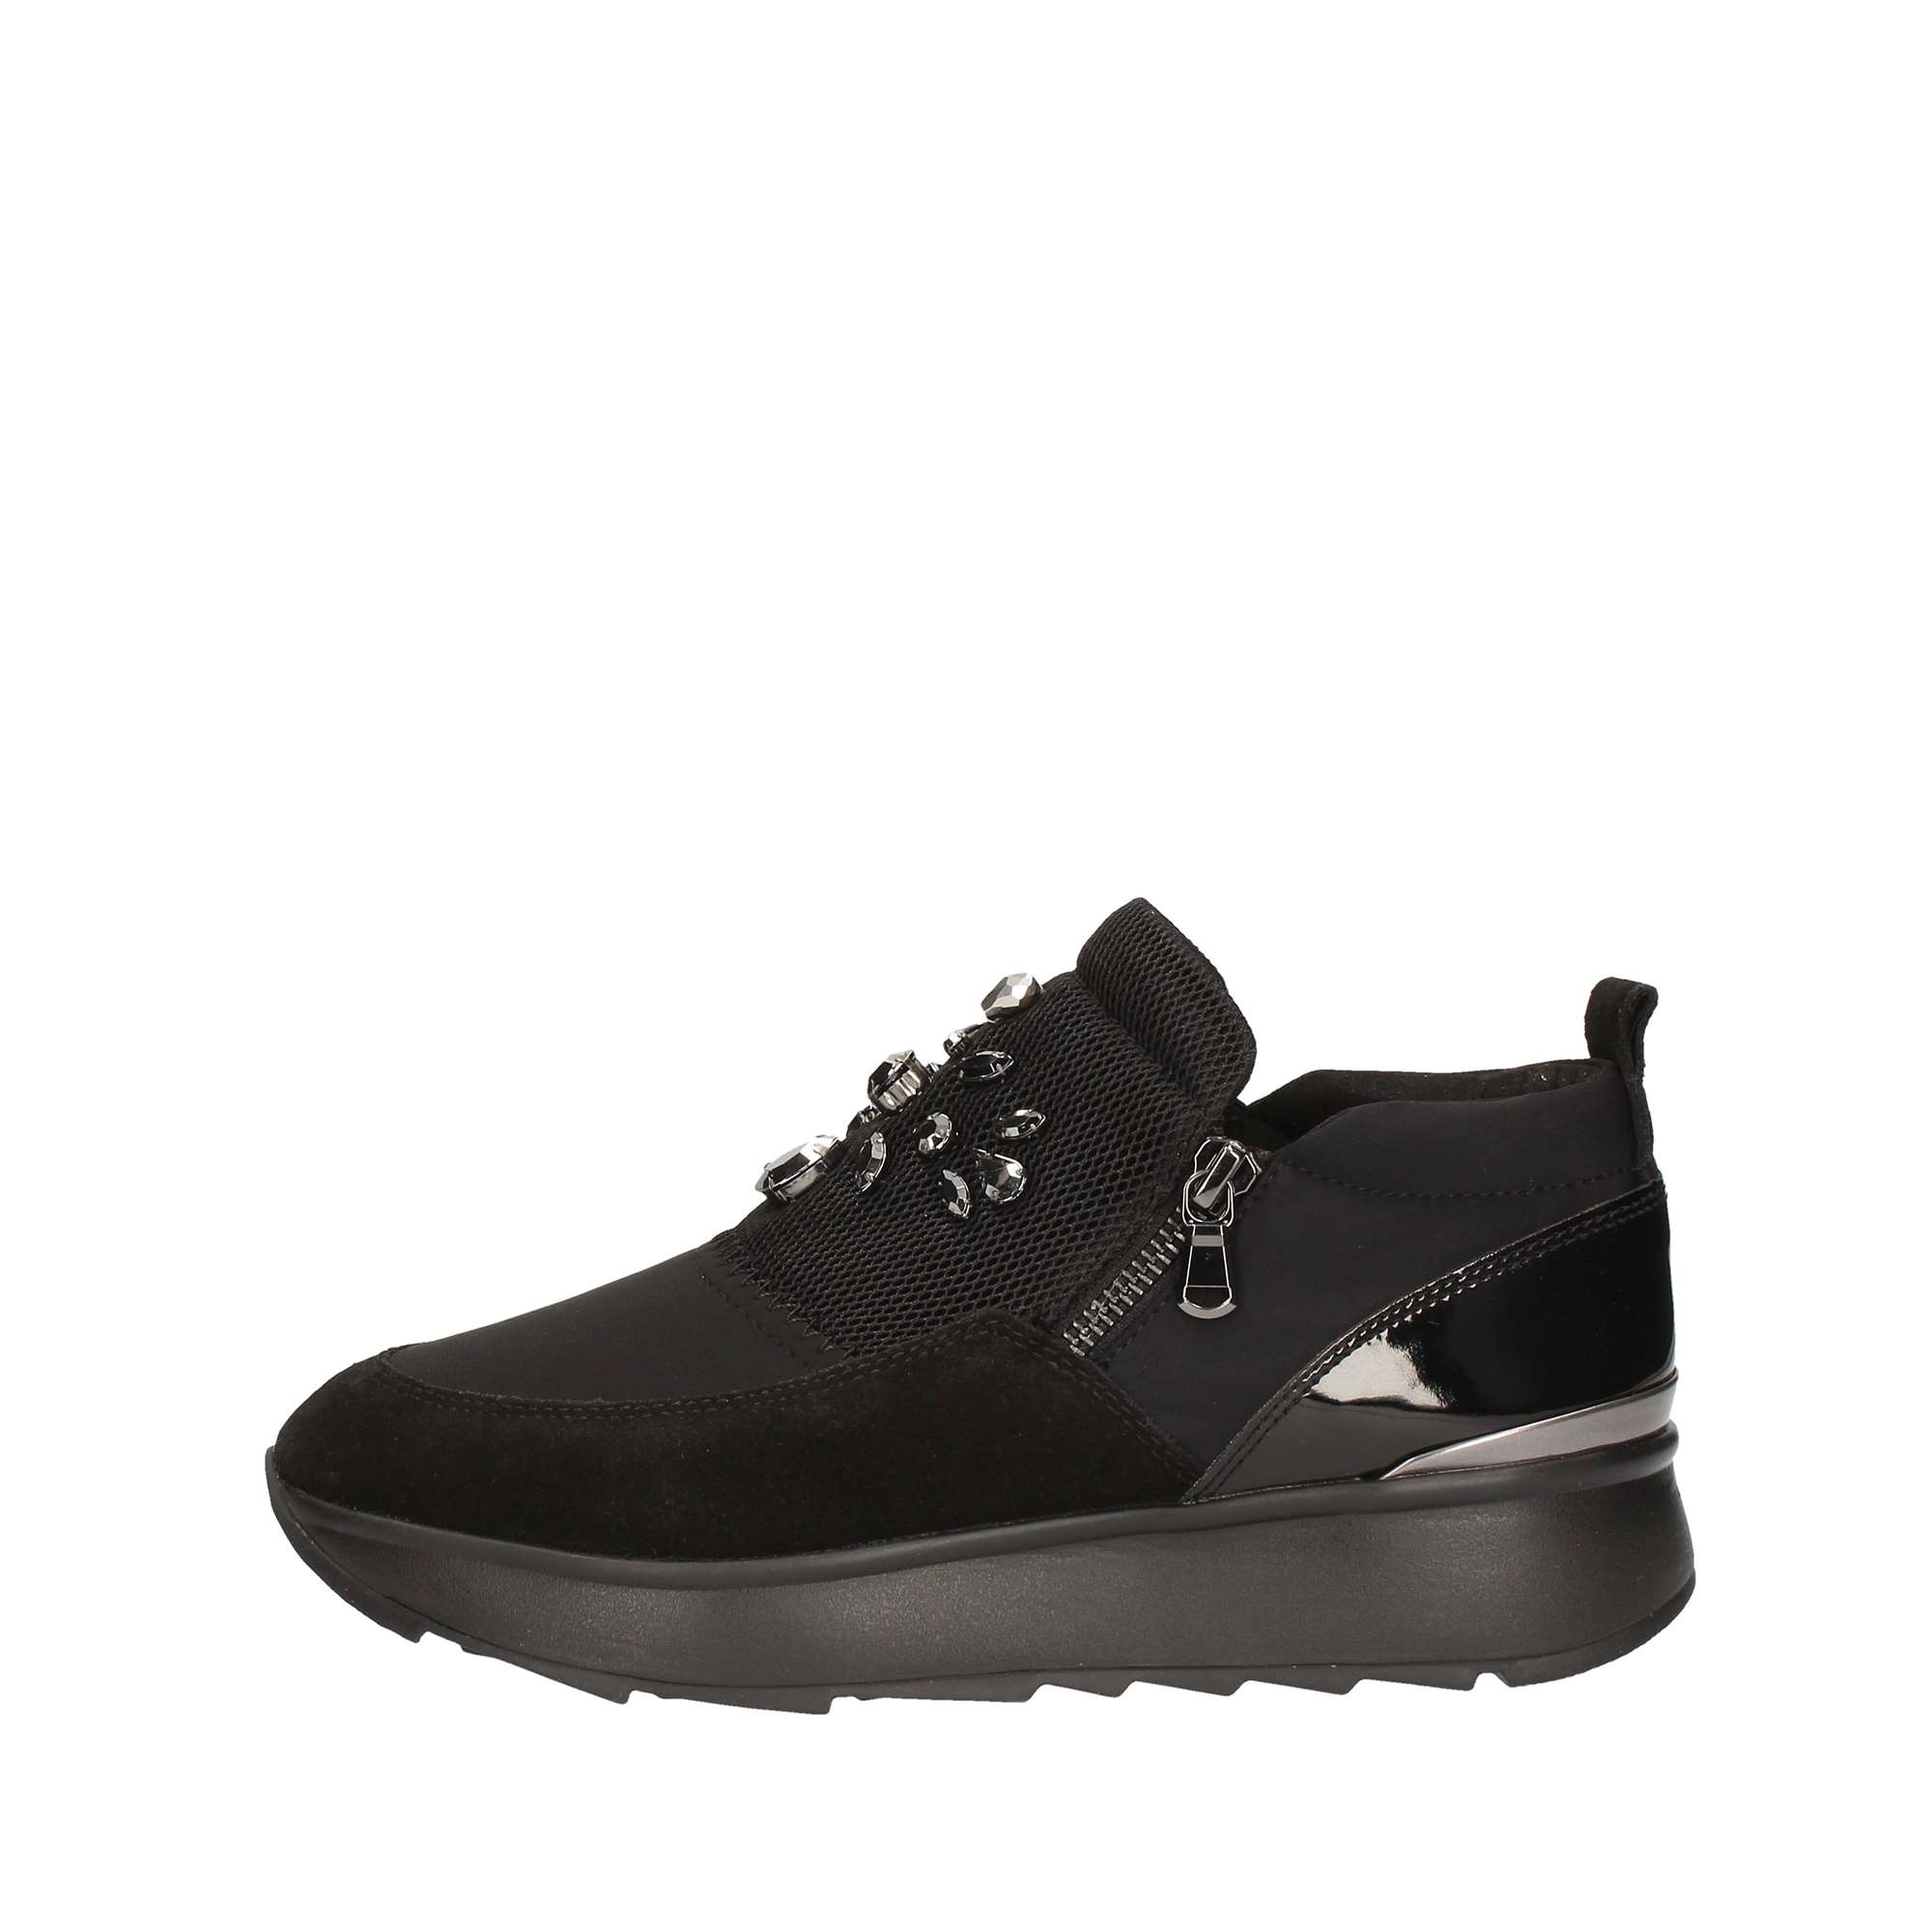 Alta qualit SNEAKERS Donna GEOX D745TA 02212 Autunno/Inverno